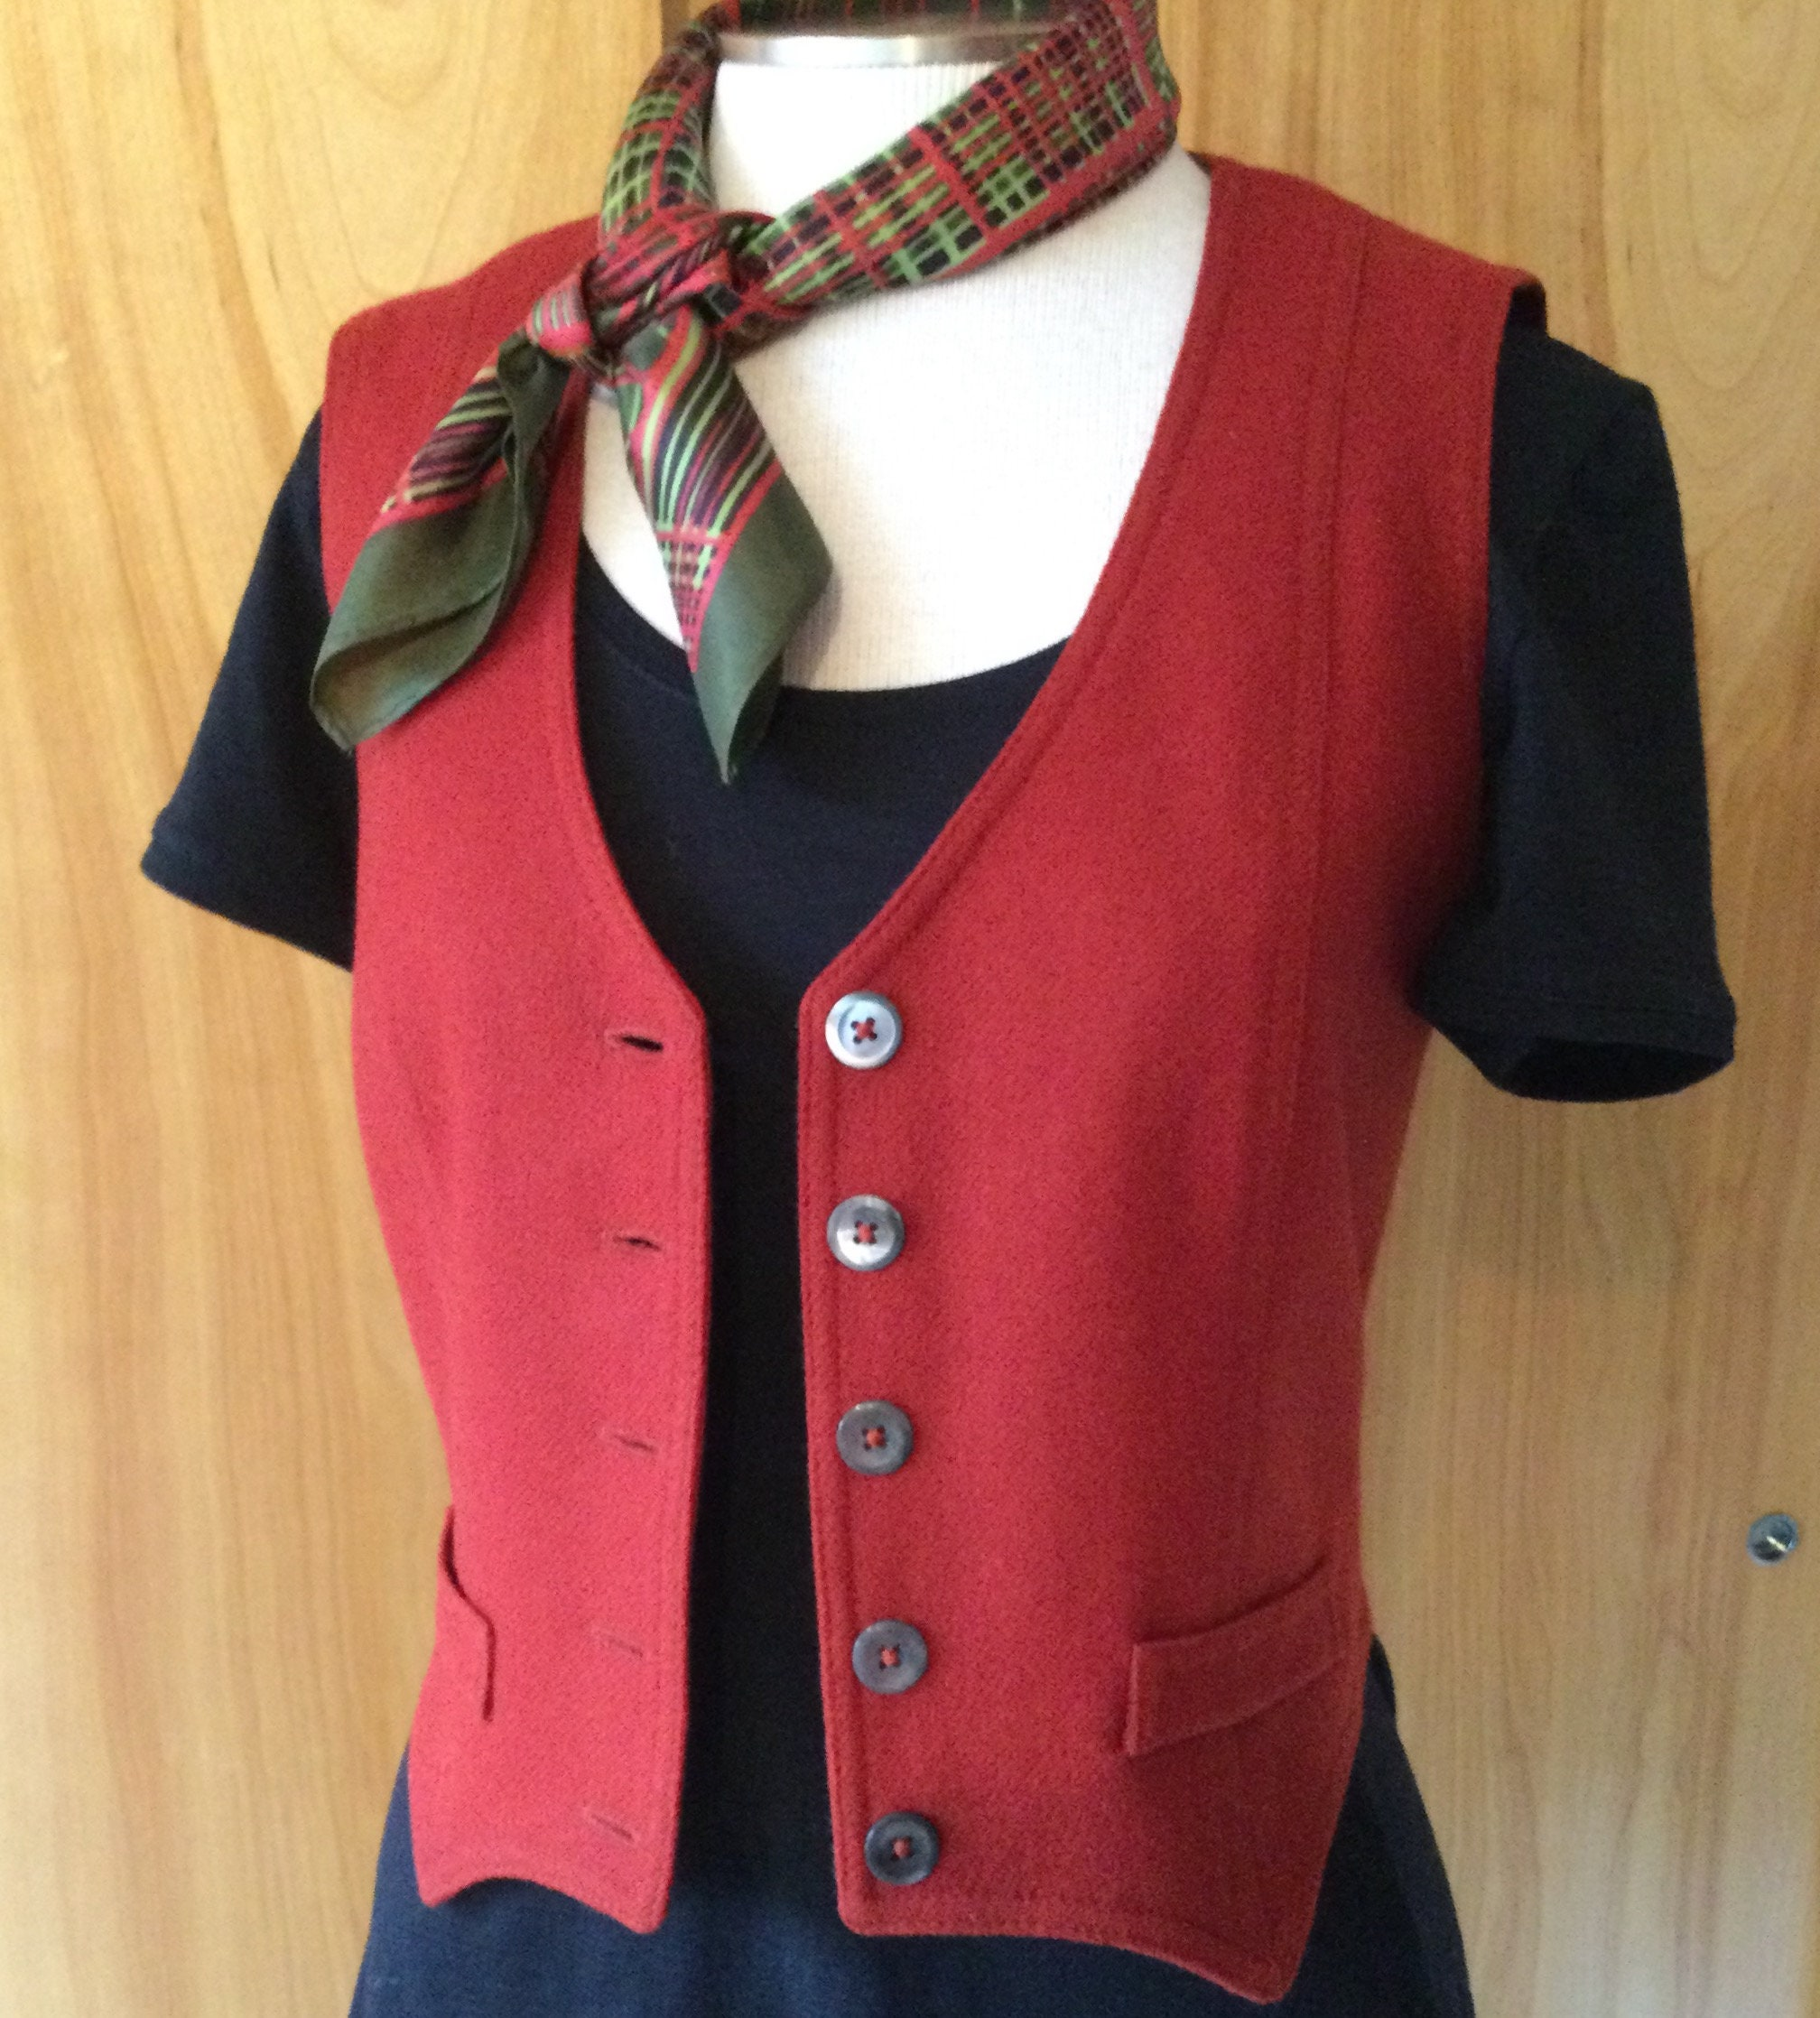 Vintage Scarf Styles -1920s to 1960s Mid Century Wool Fitted Vest Bronson Orange Red Excellent Condition Lined Small 46 Sixties $5.50 AT vintagedancer.com